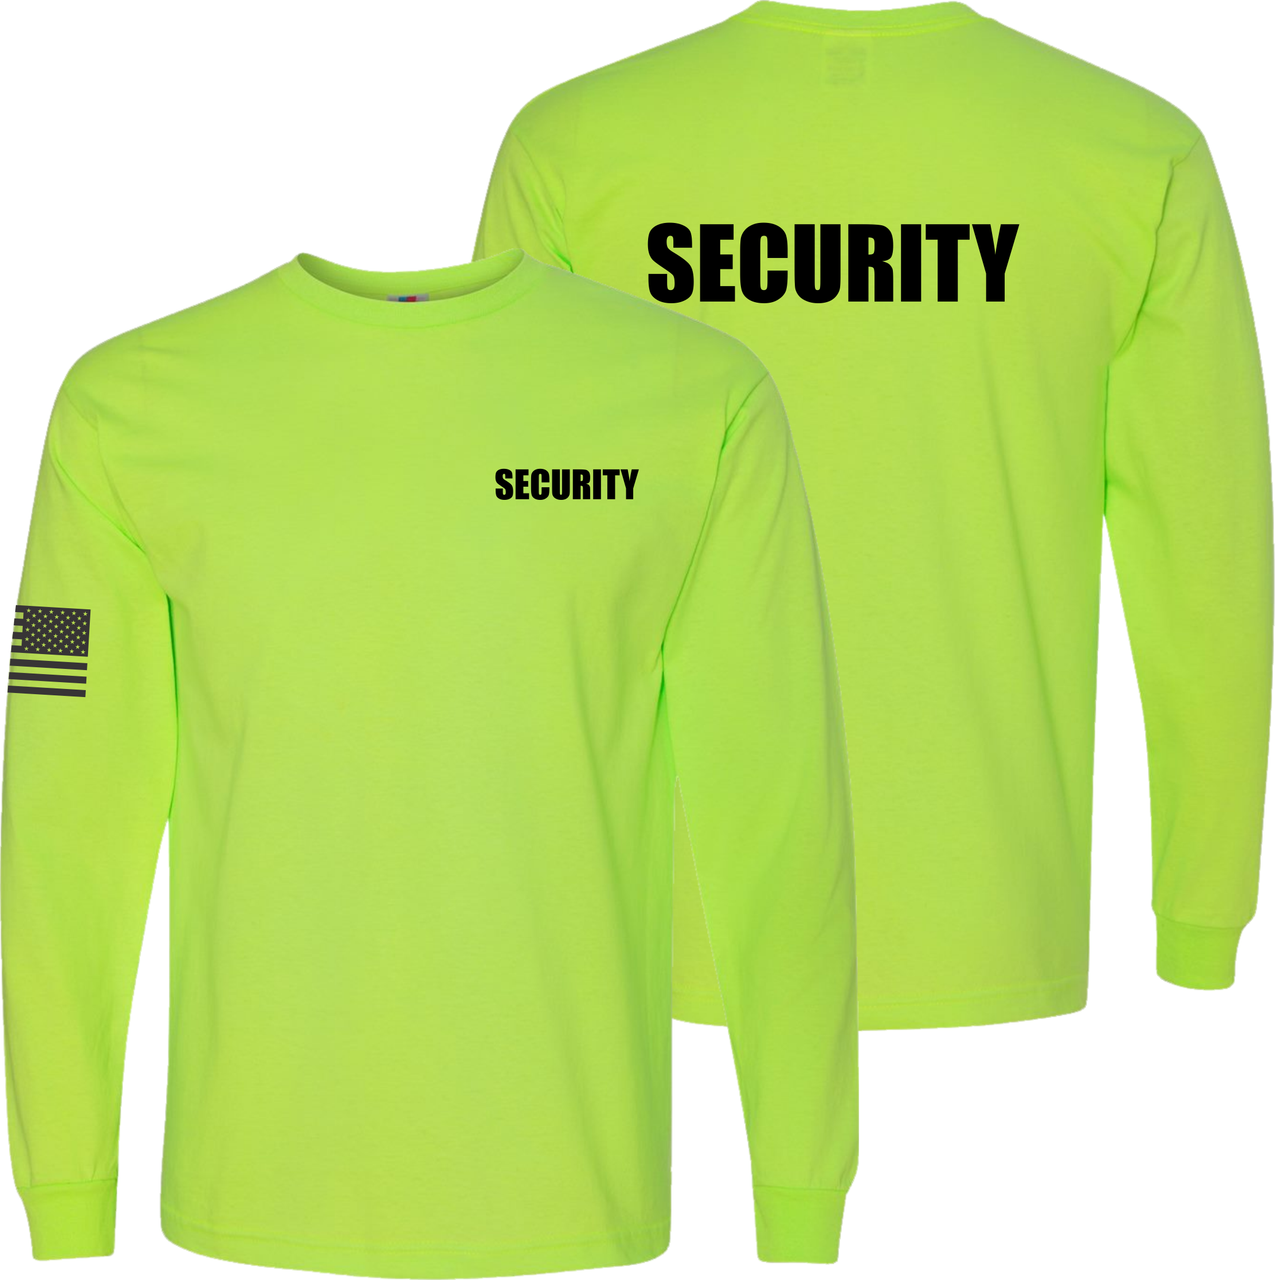 Safety Green Long Sleeve Security T Shirt made in the USA.